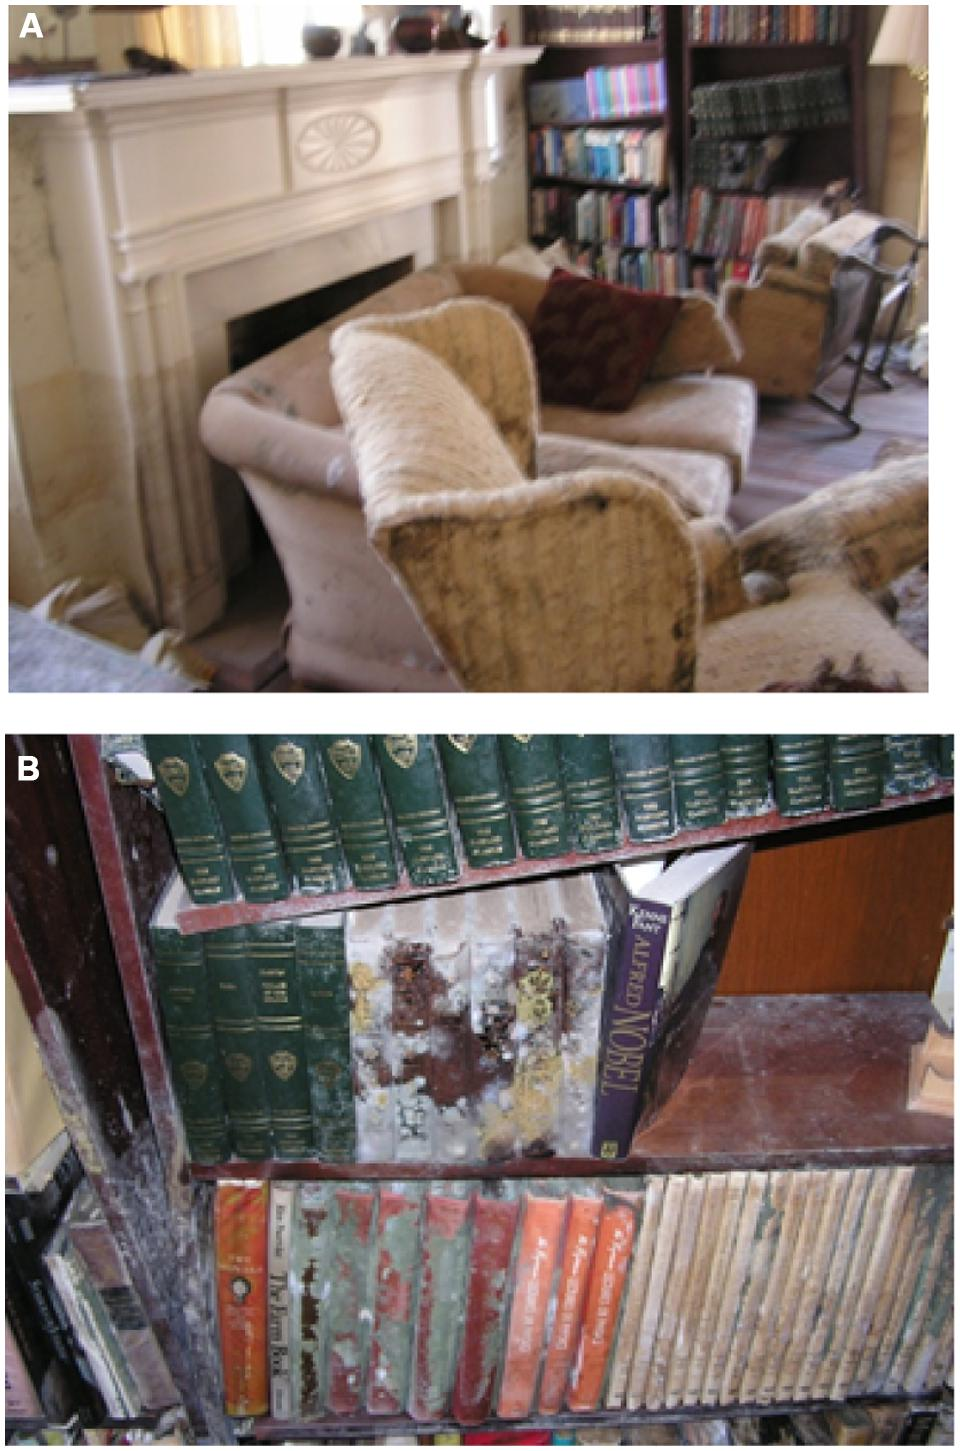 FIGURE 1. (A) The living room of the author's New Orleans home on October 6, 2005 in the aftermath of Hurricane Katrina. (B) Closer view of moldy books on flooded book shelf.